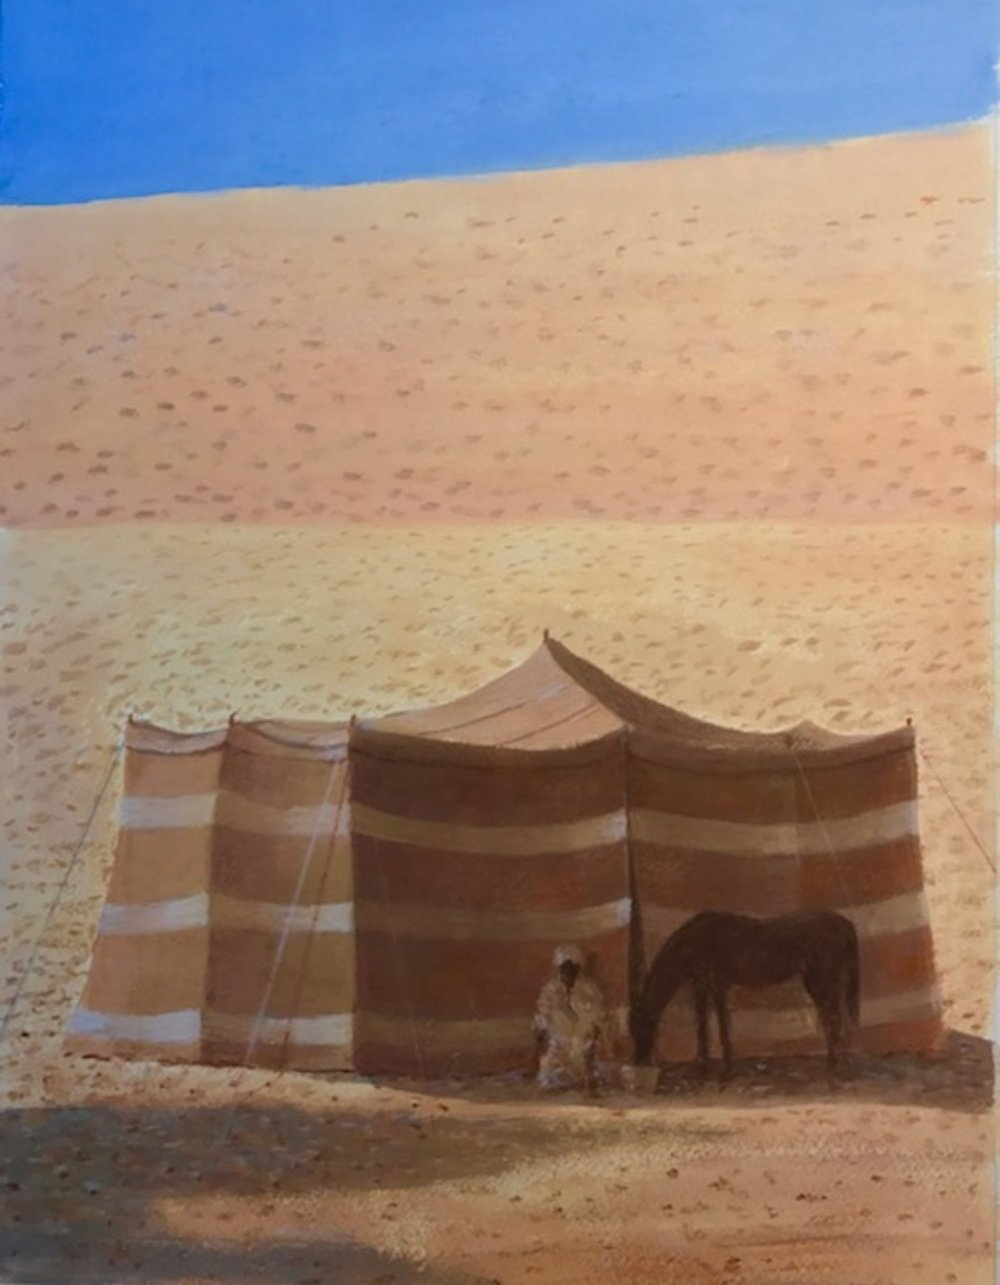 Desert tent, man and horse